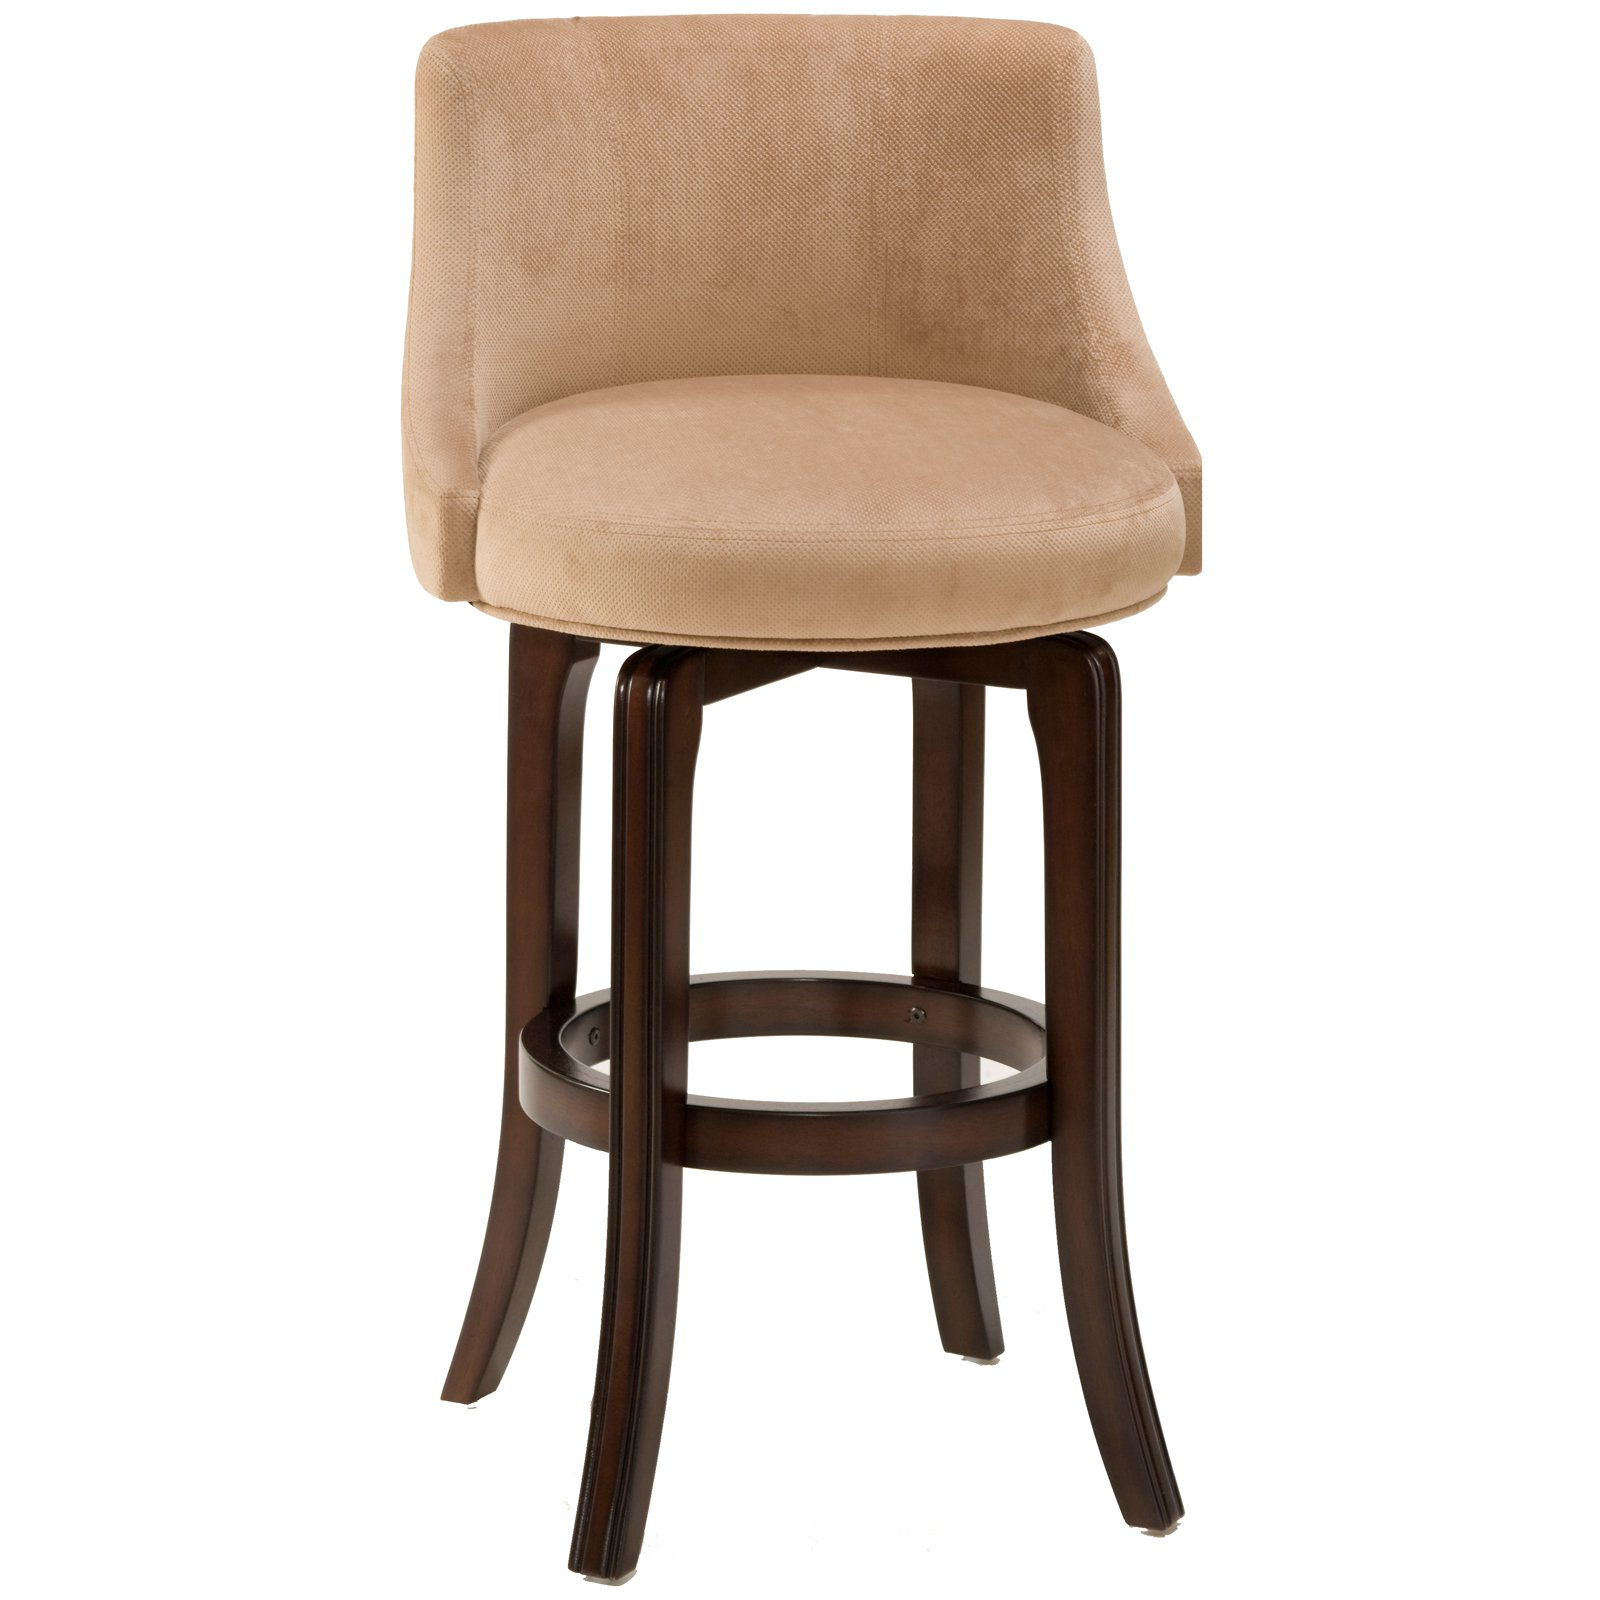 Hillsdale Napa Valley 30 in. Swivel Bar Stool Khaki Fabric Seat by Hillsdale Furniture